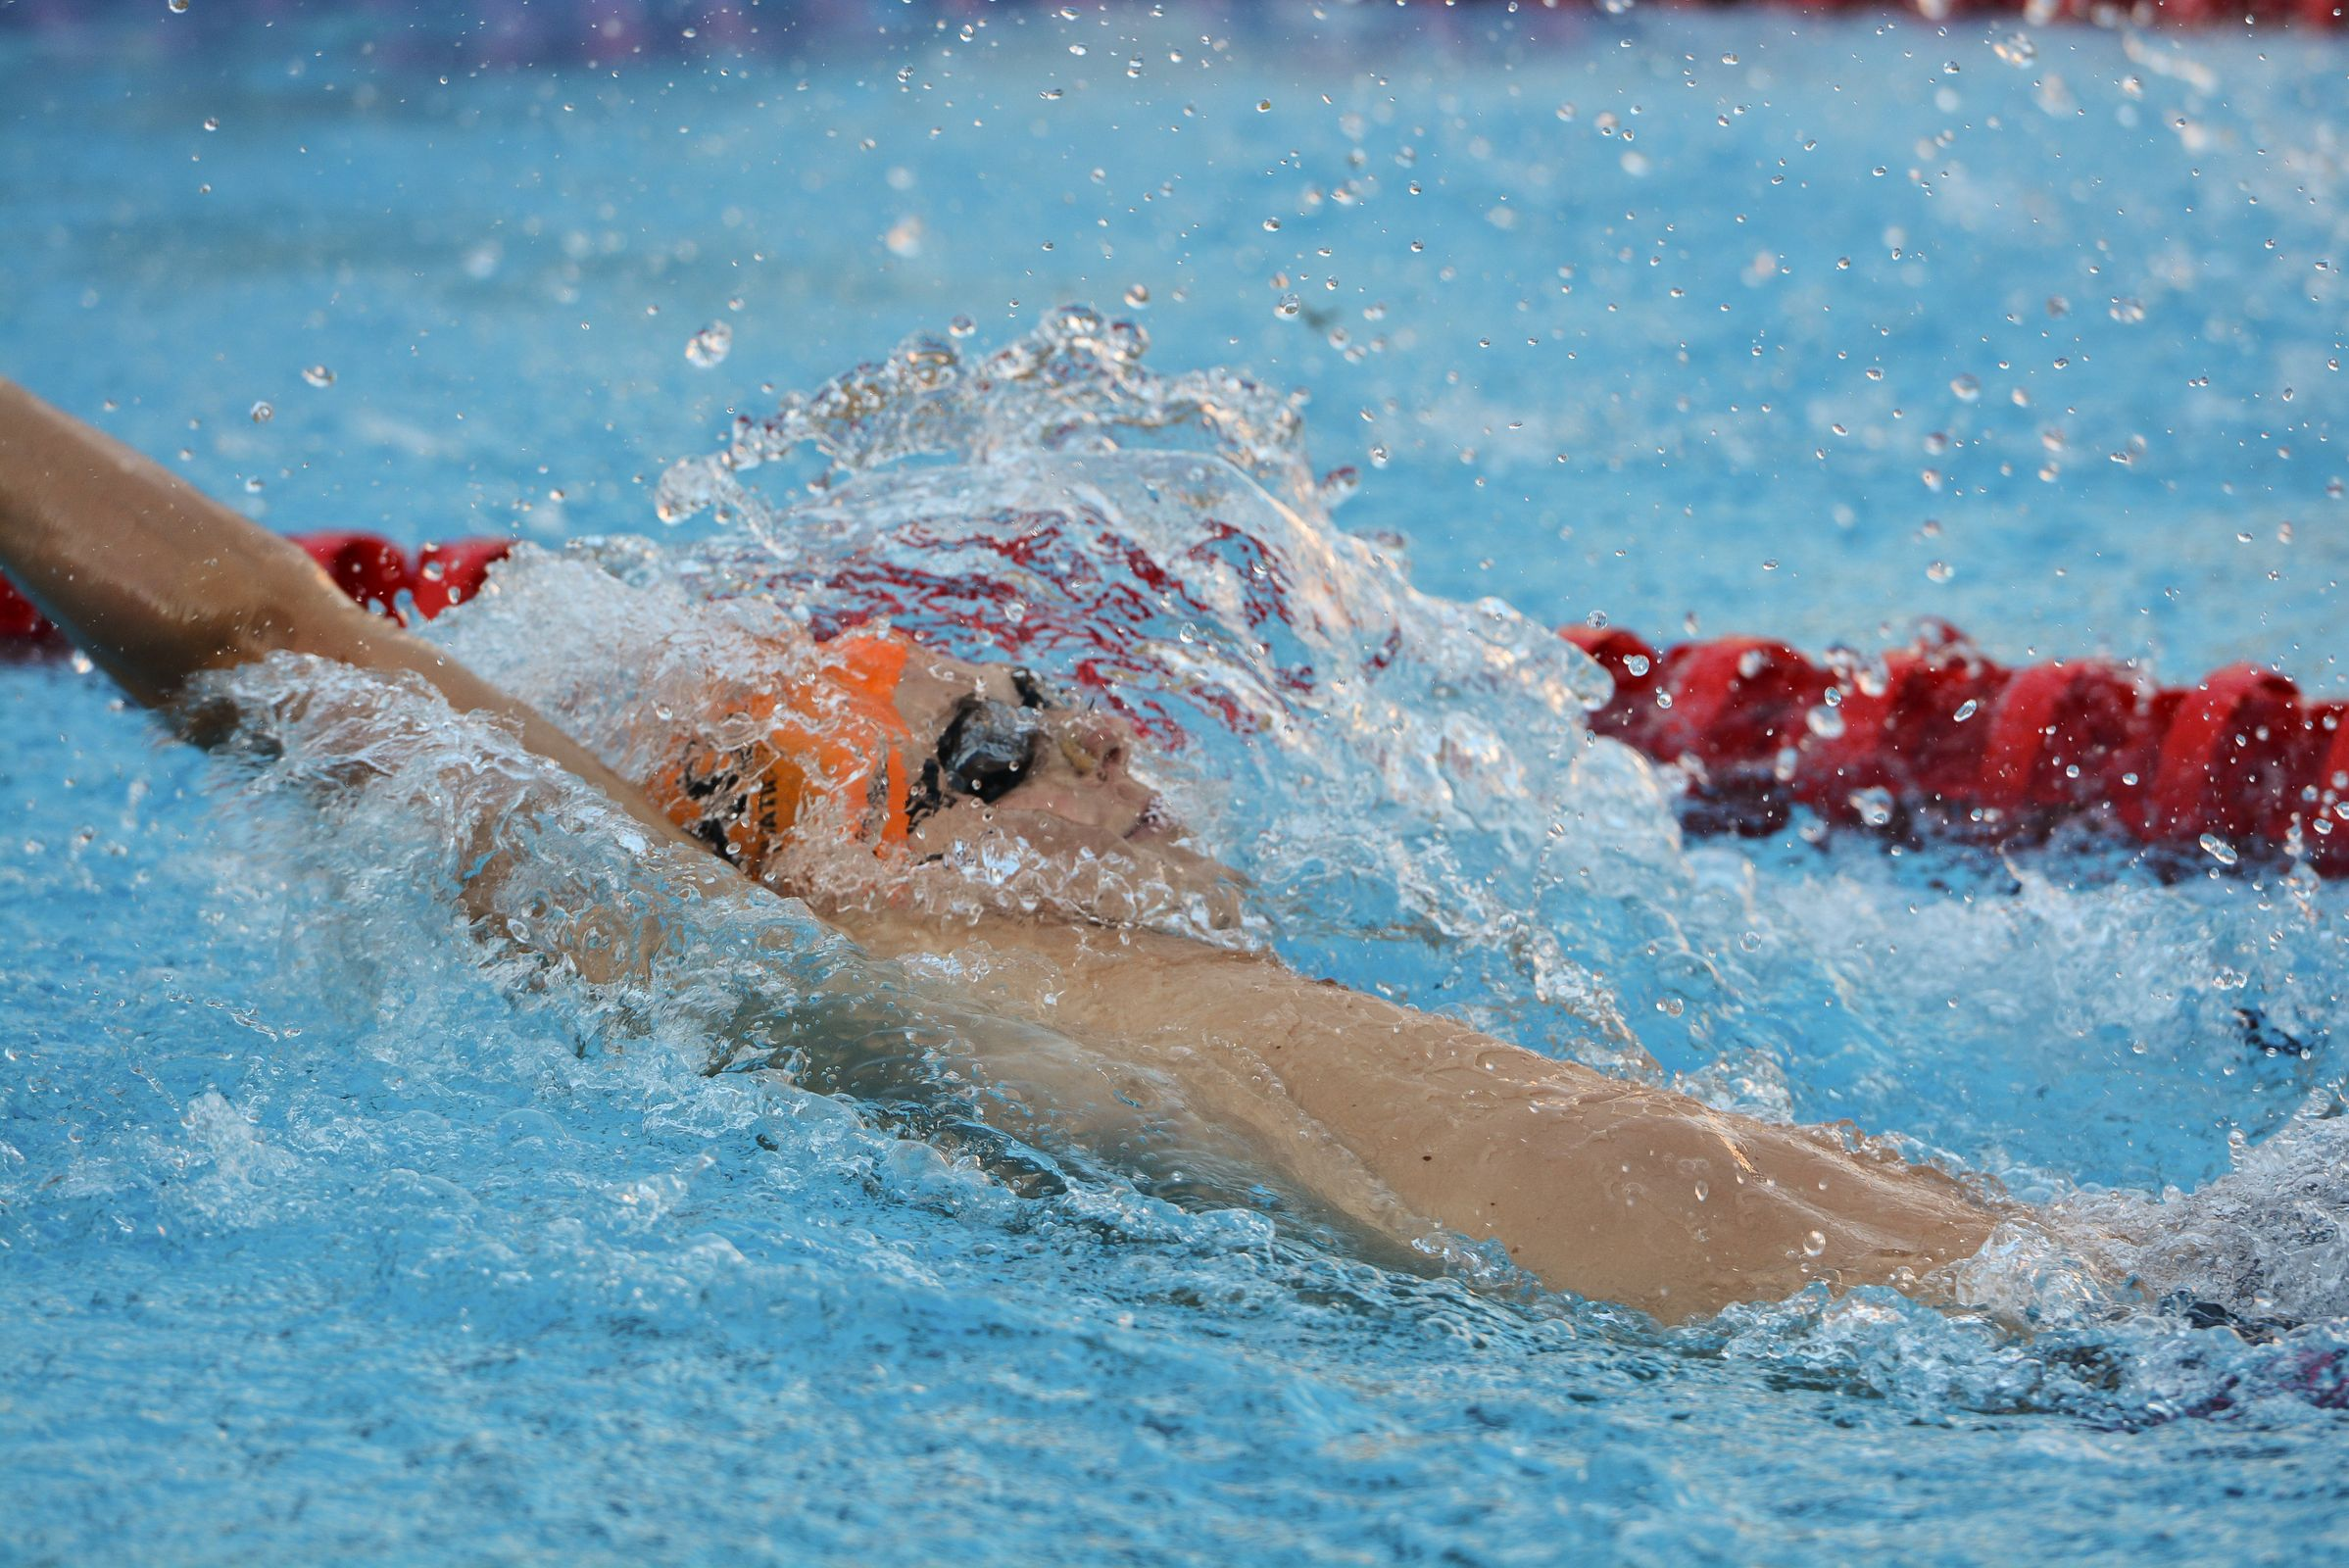 Dean Farris Doubles In Prelims At Day Four Of 2016 Ncsa Juniors Swimming World News